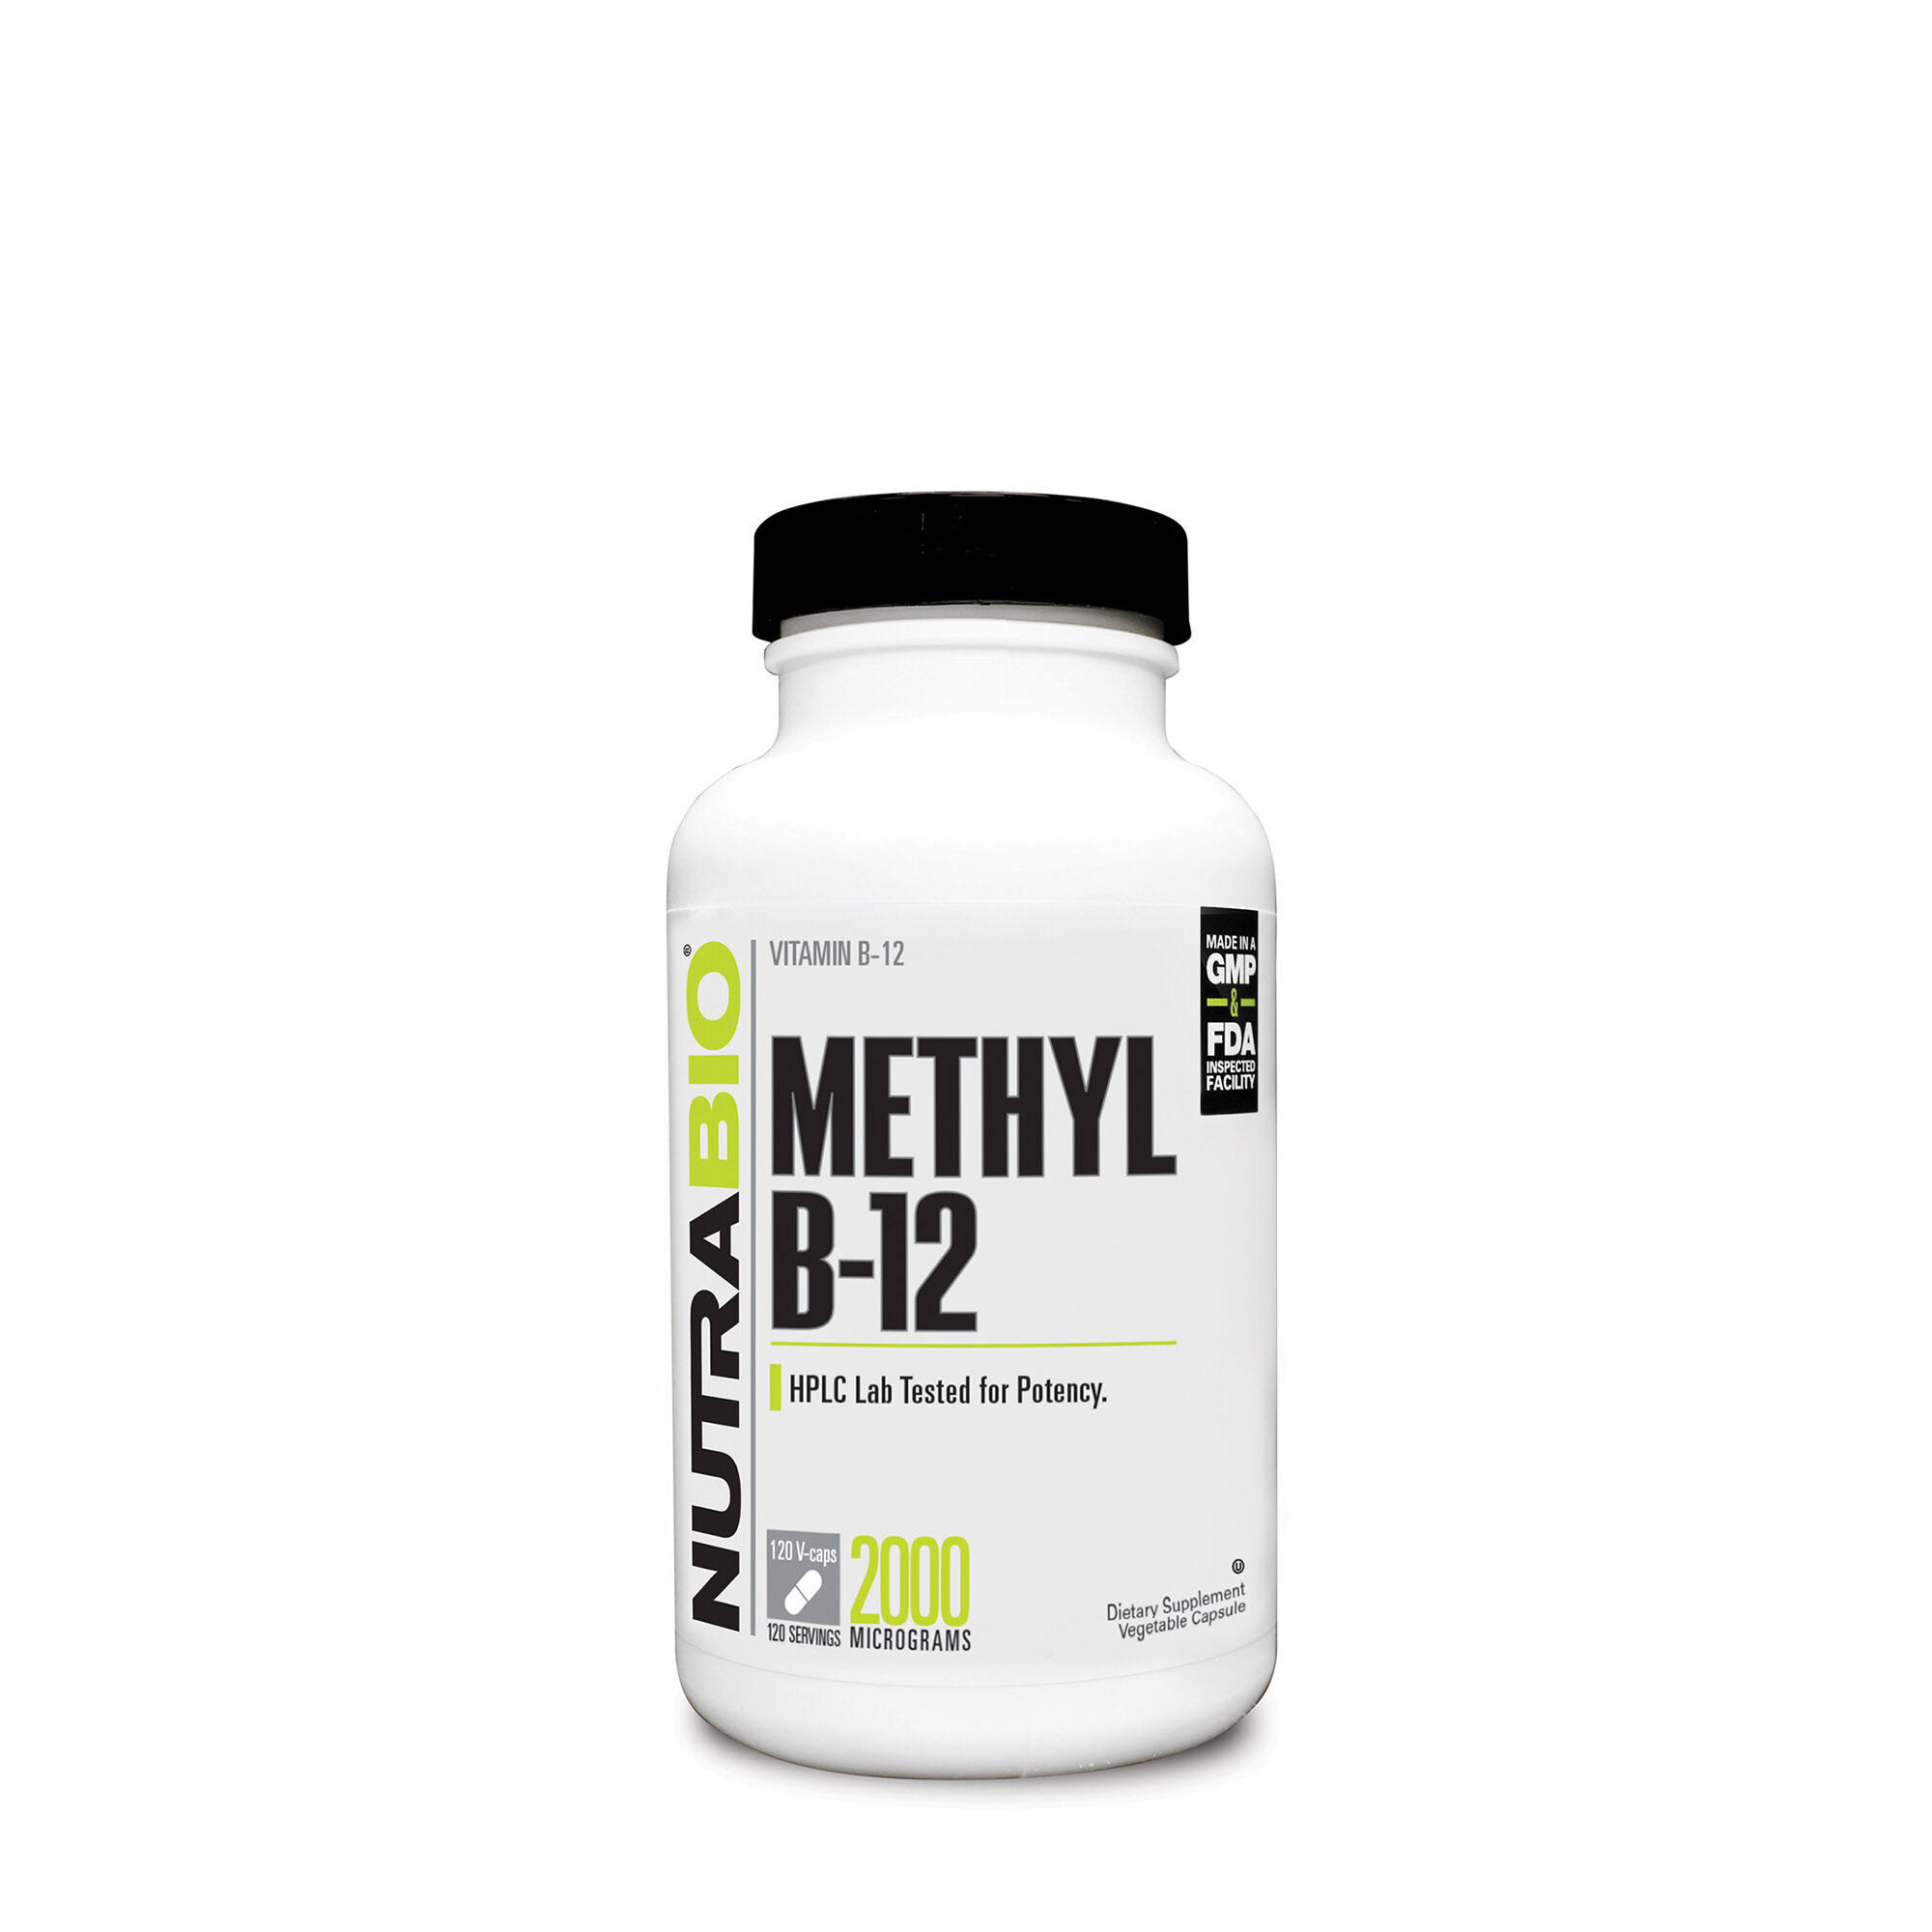 NutraBio Methyl B-12 Supplement - 2000mcg, 120 Caps